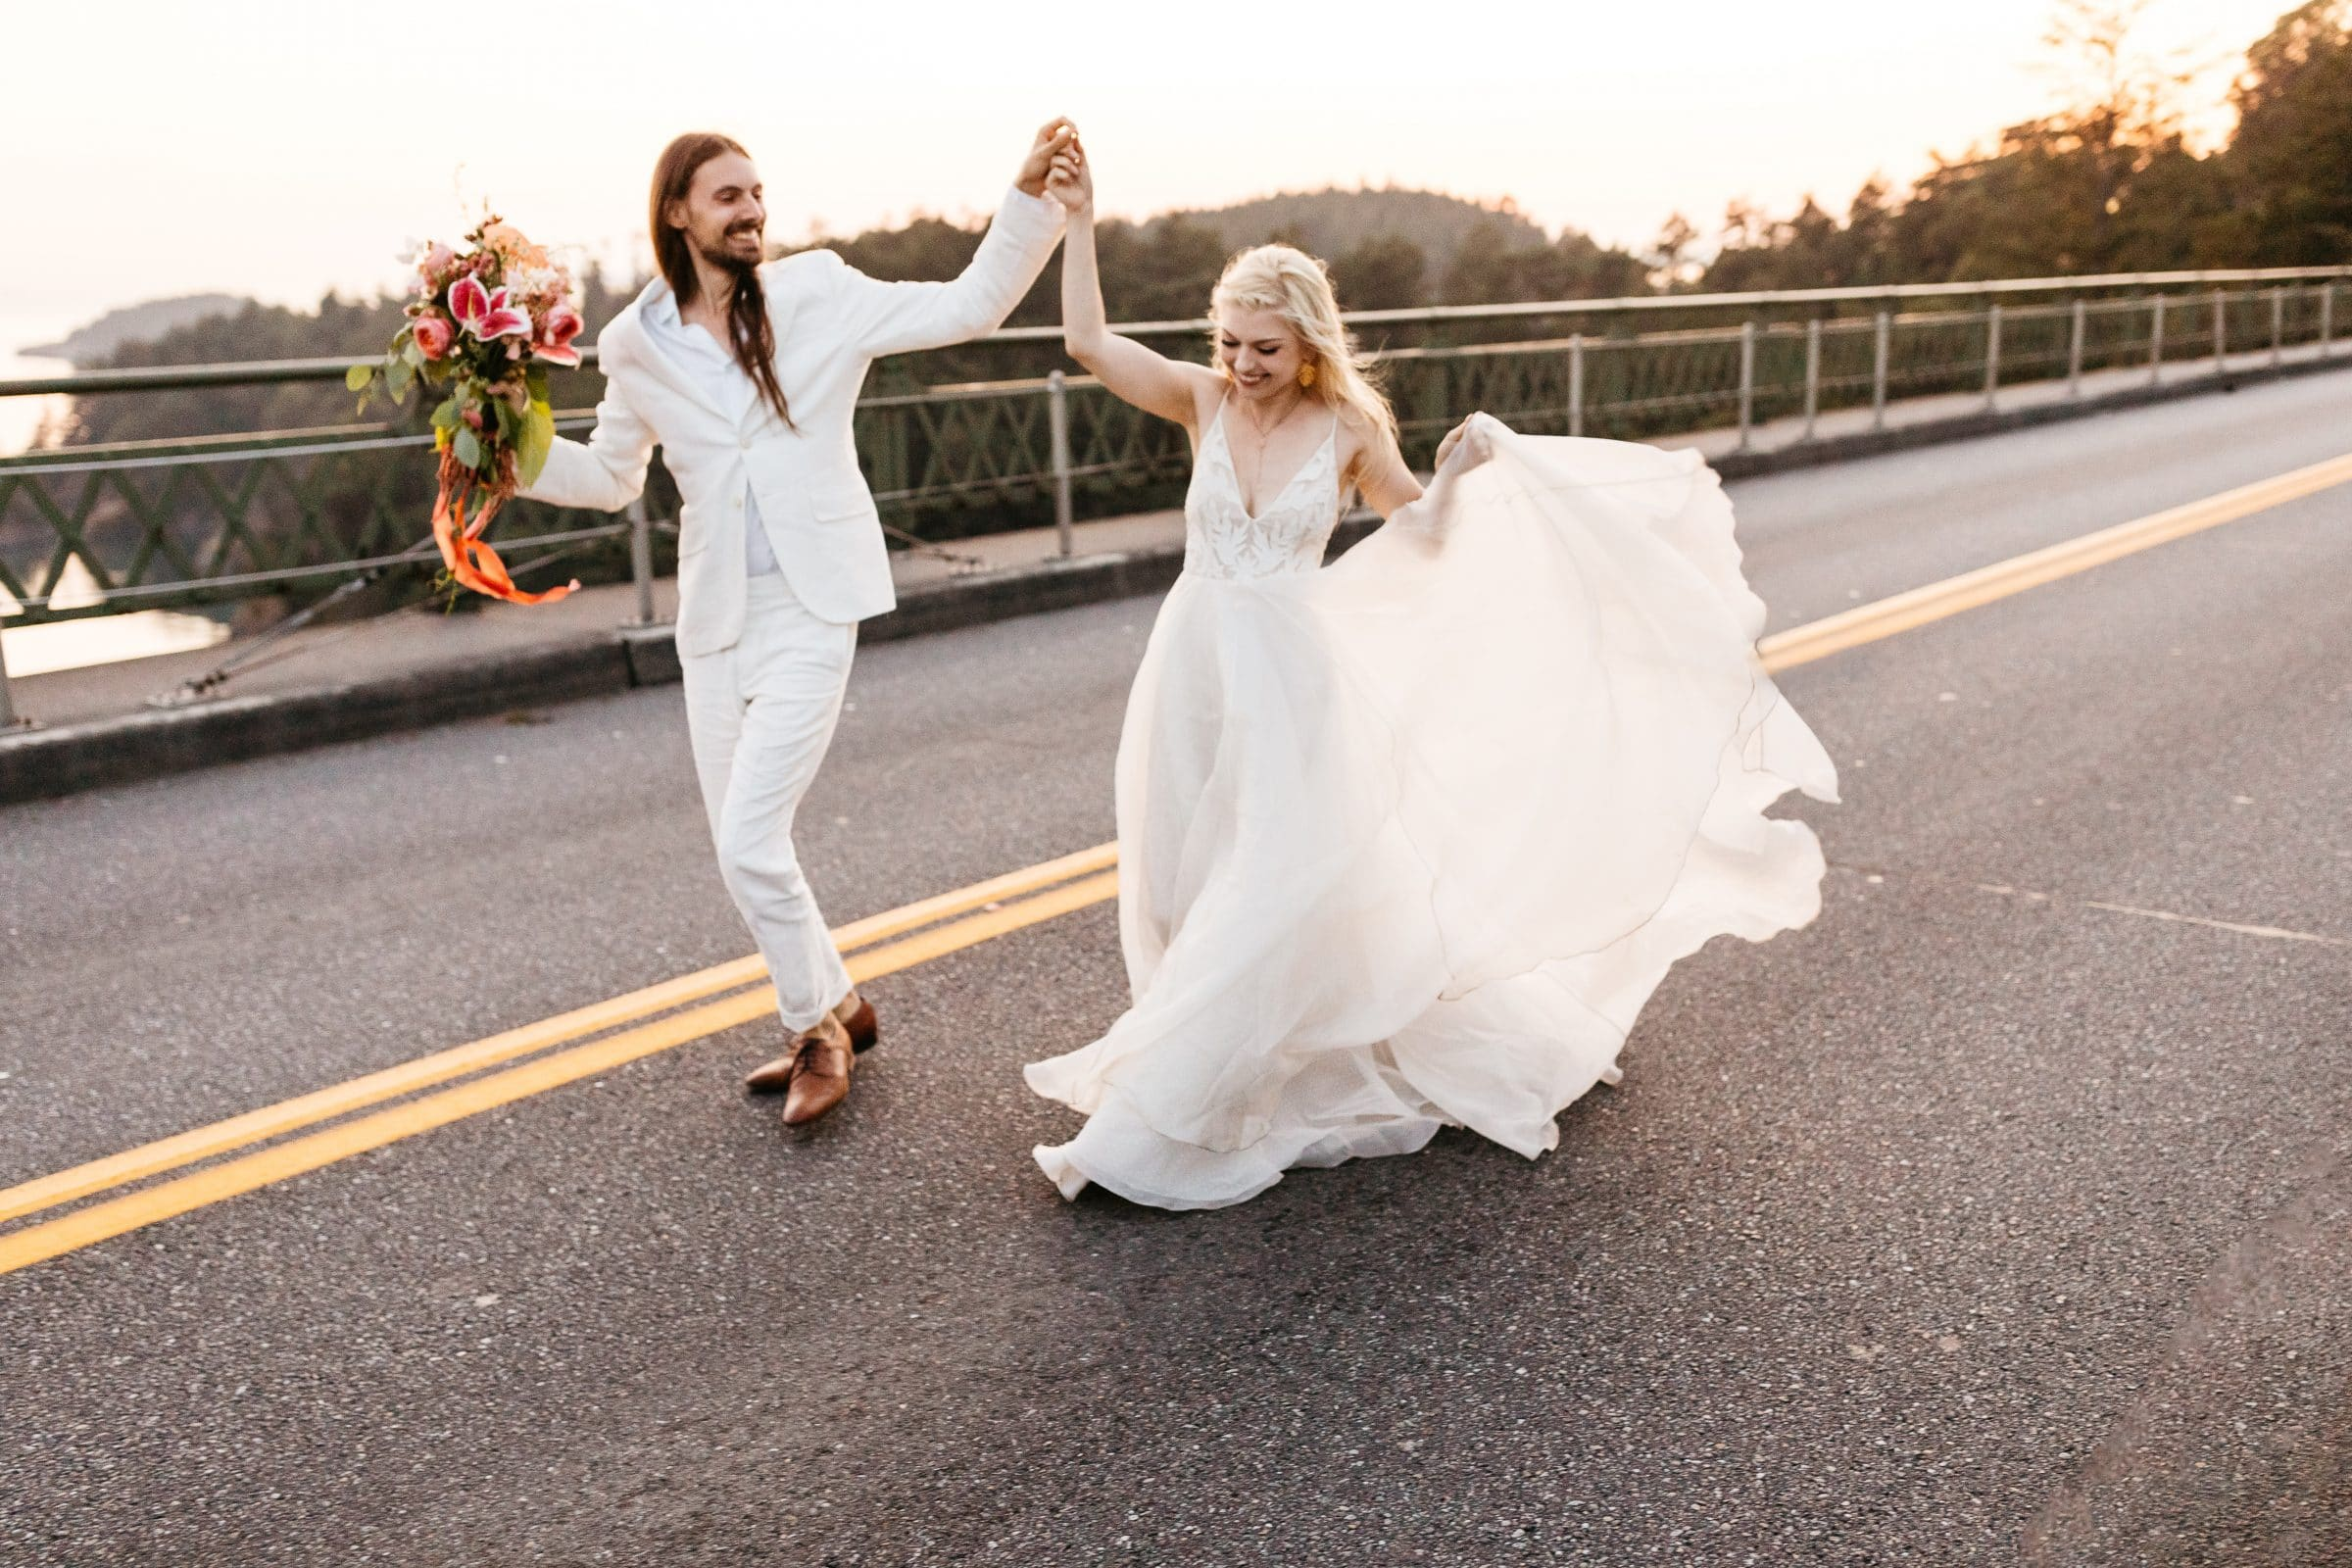 deception pass bridge wedding photo